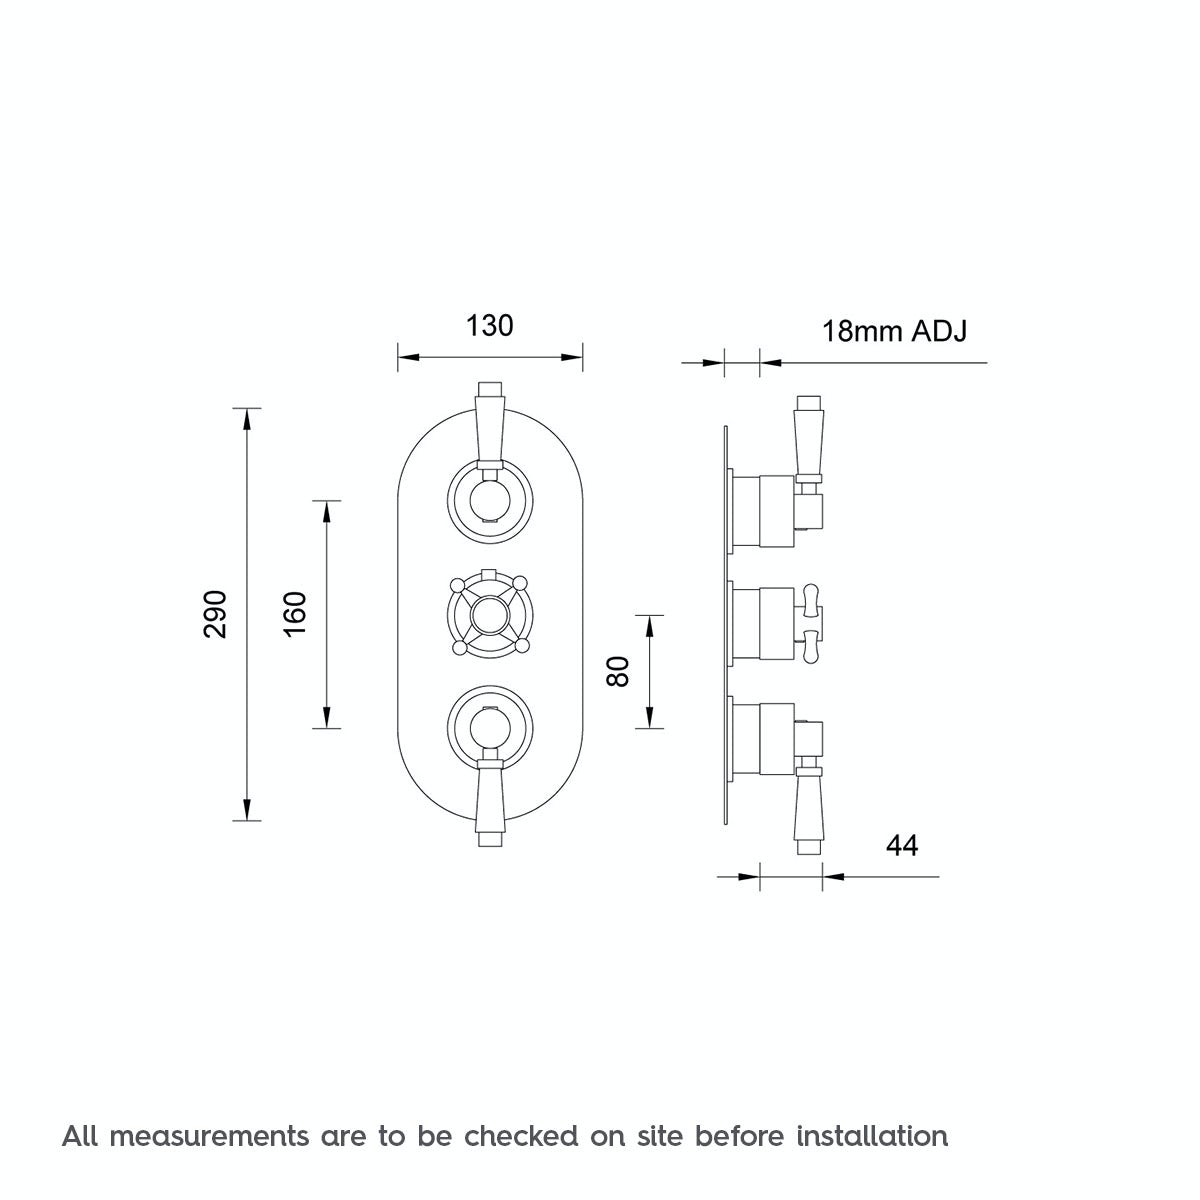 Dimensions for The Bath Co. Traditional oval triple thermostatic shower valve